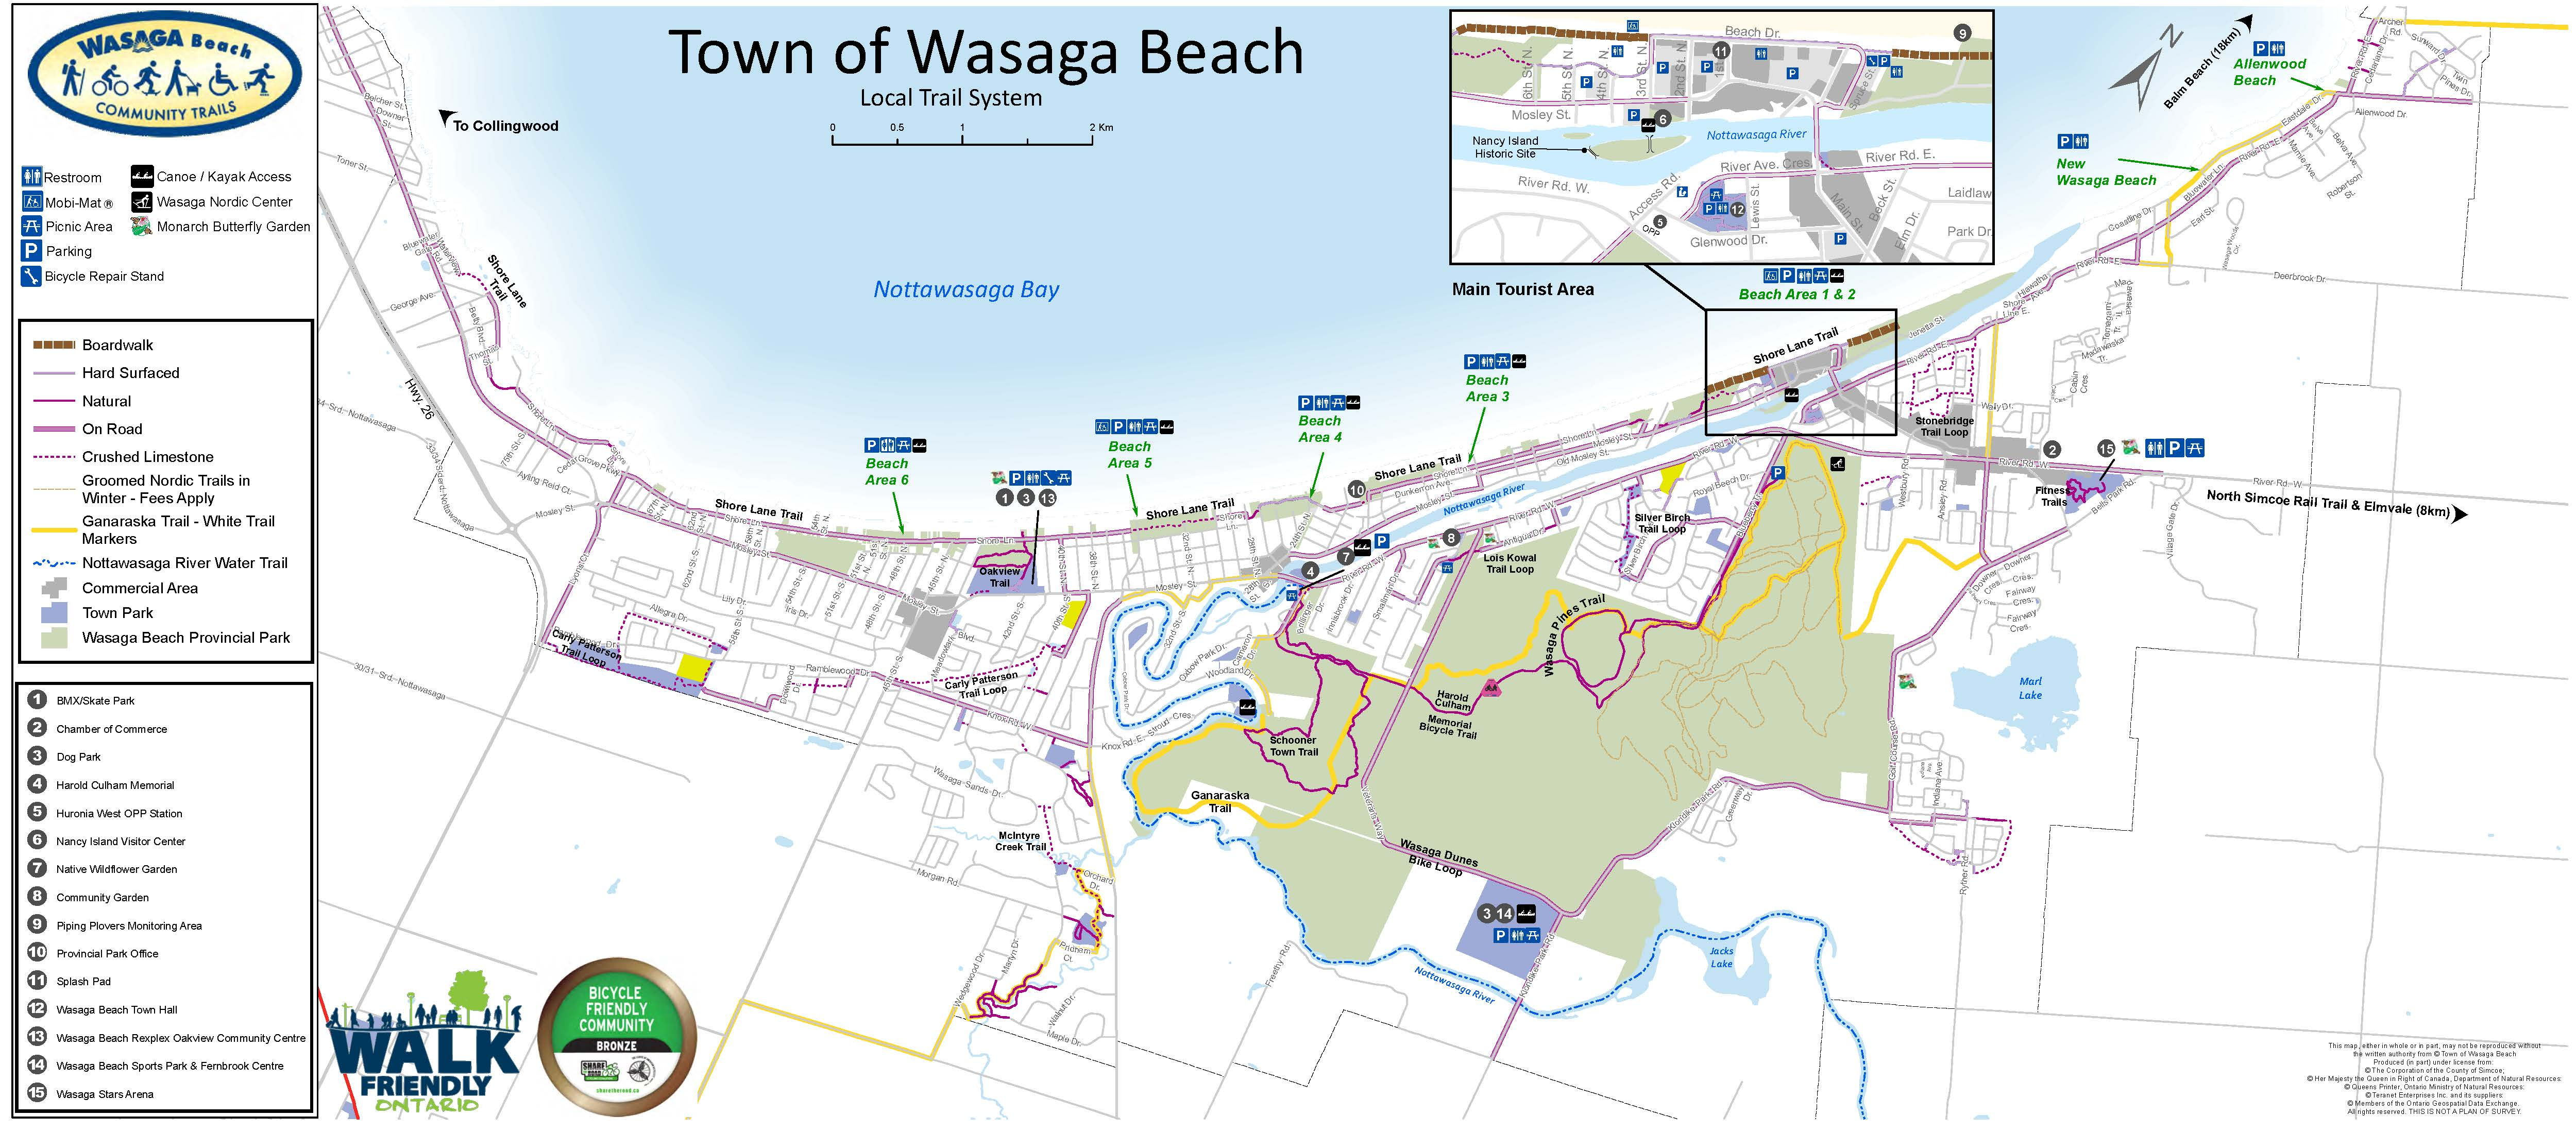 Town of Wasaga Beach Trails map